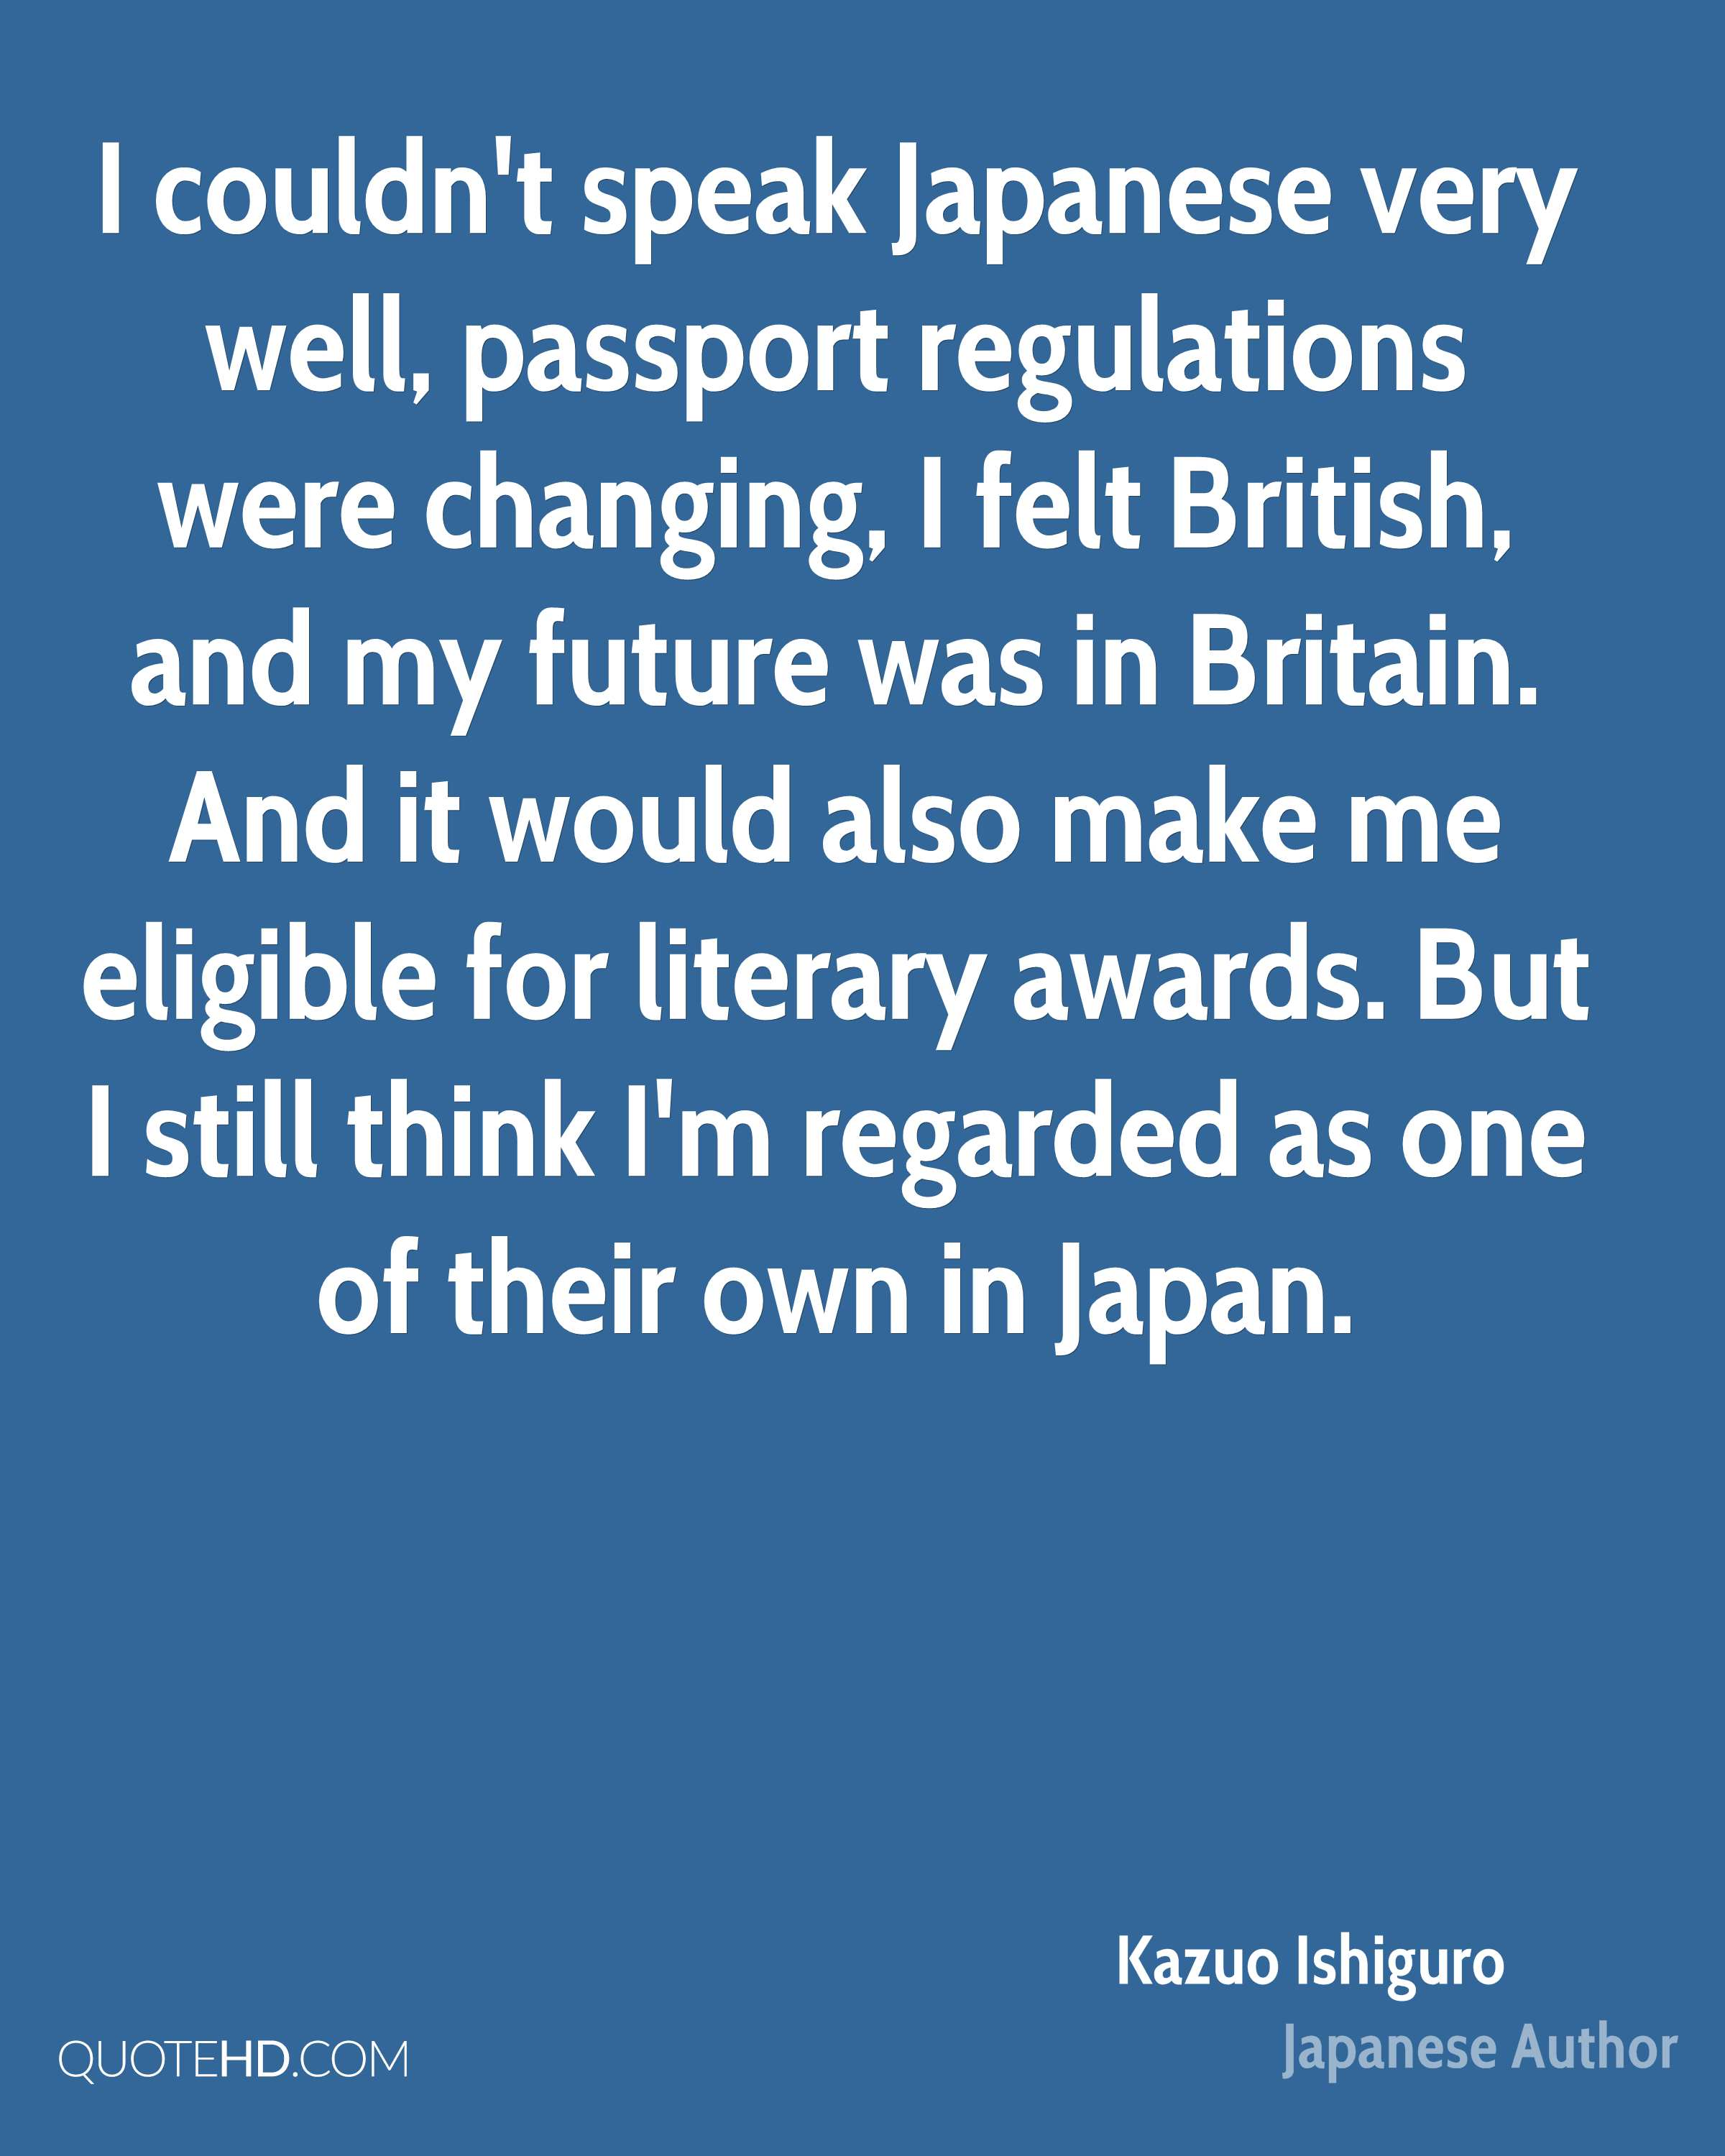 I couldn't speak Japanese very well, passport regulations were changing, I felt British, and my future was in Britain. And it would also make me eligible for literary awards. But I still think I'm regarded as one of their own in Japan.